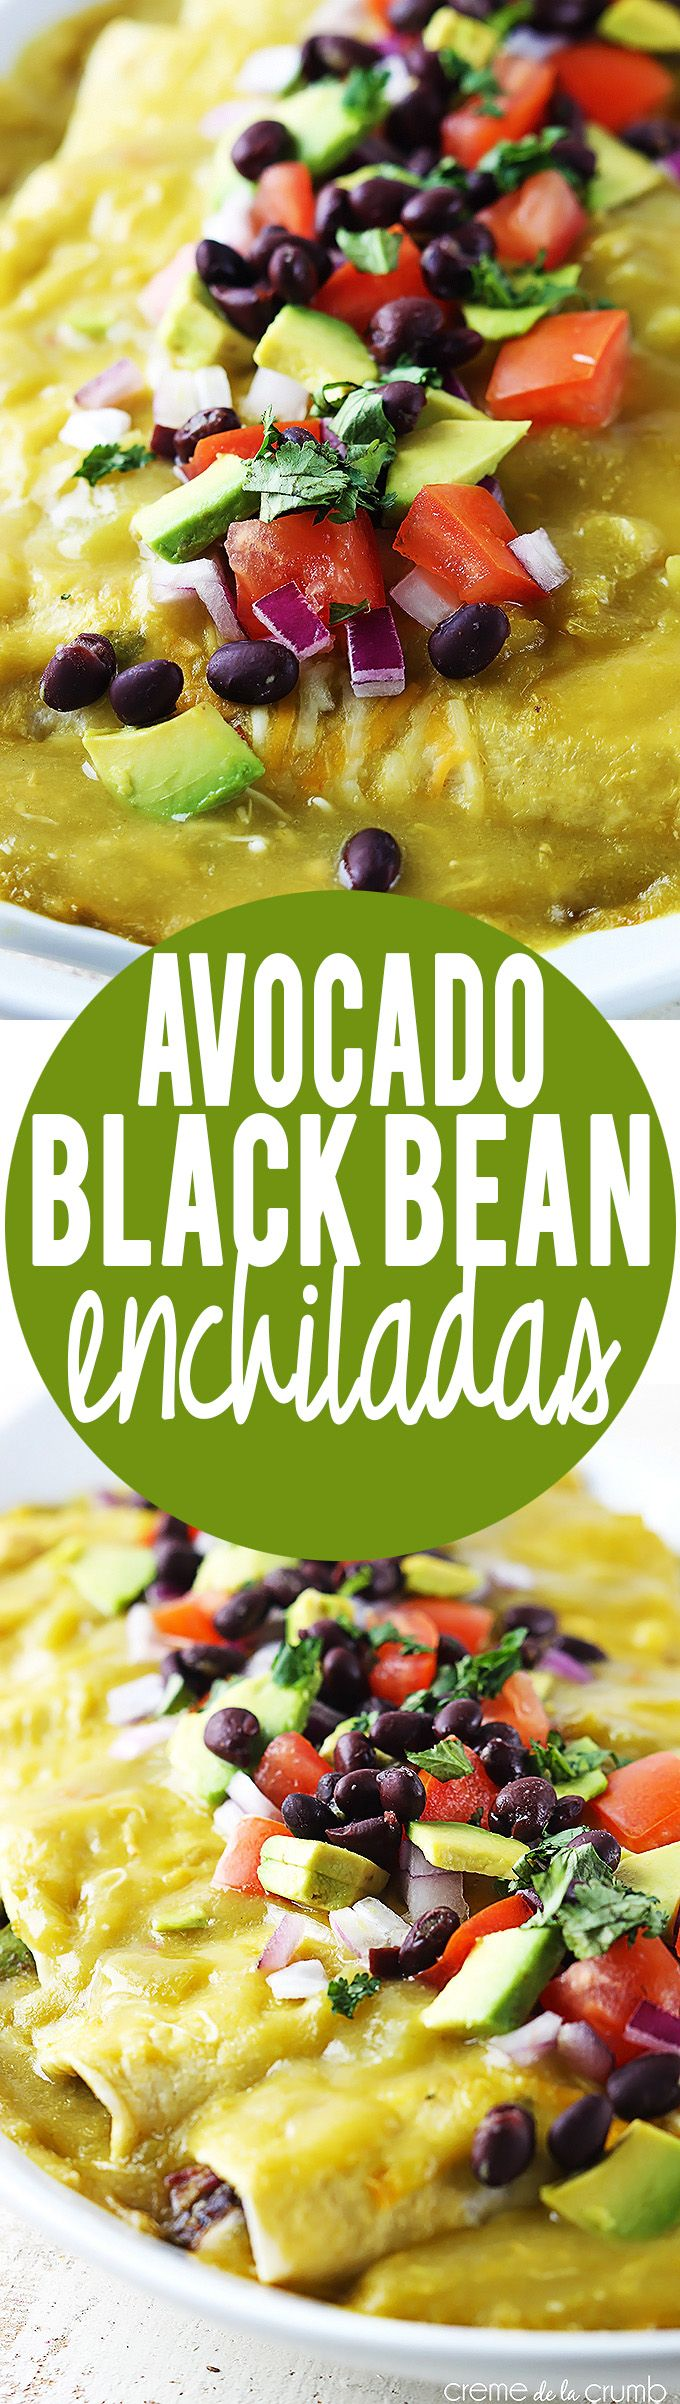 Avocado Black Bean Enchiladas | Creme de la Crumb instead of canned beans I made beans in the crockpot...